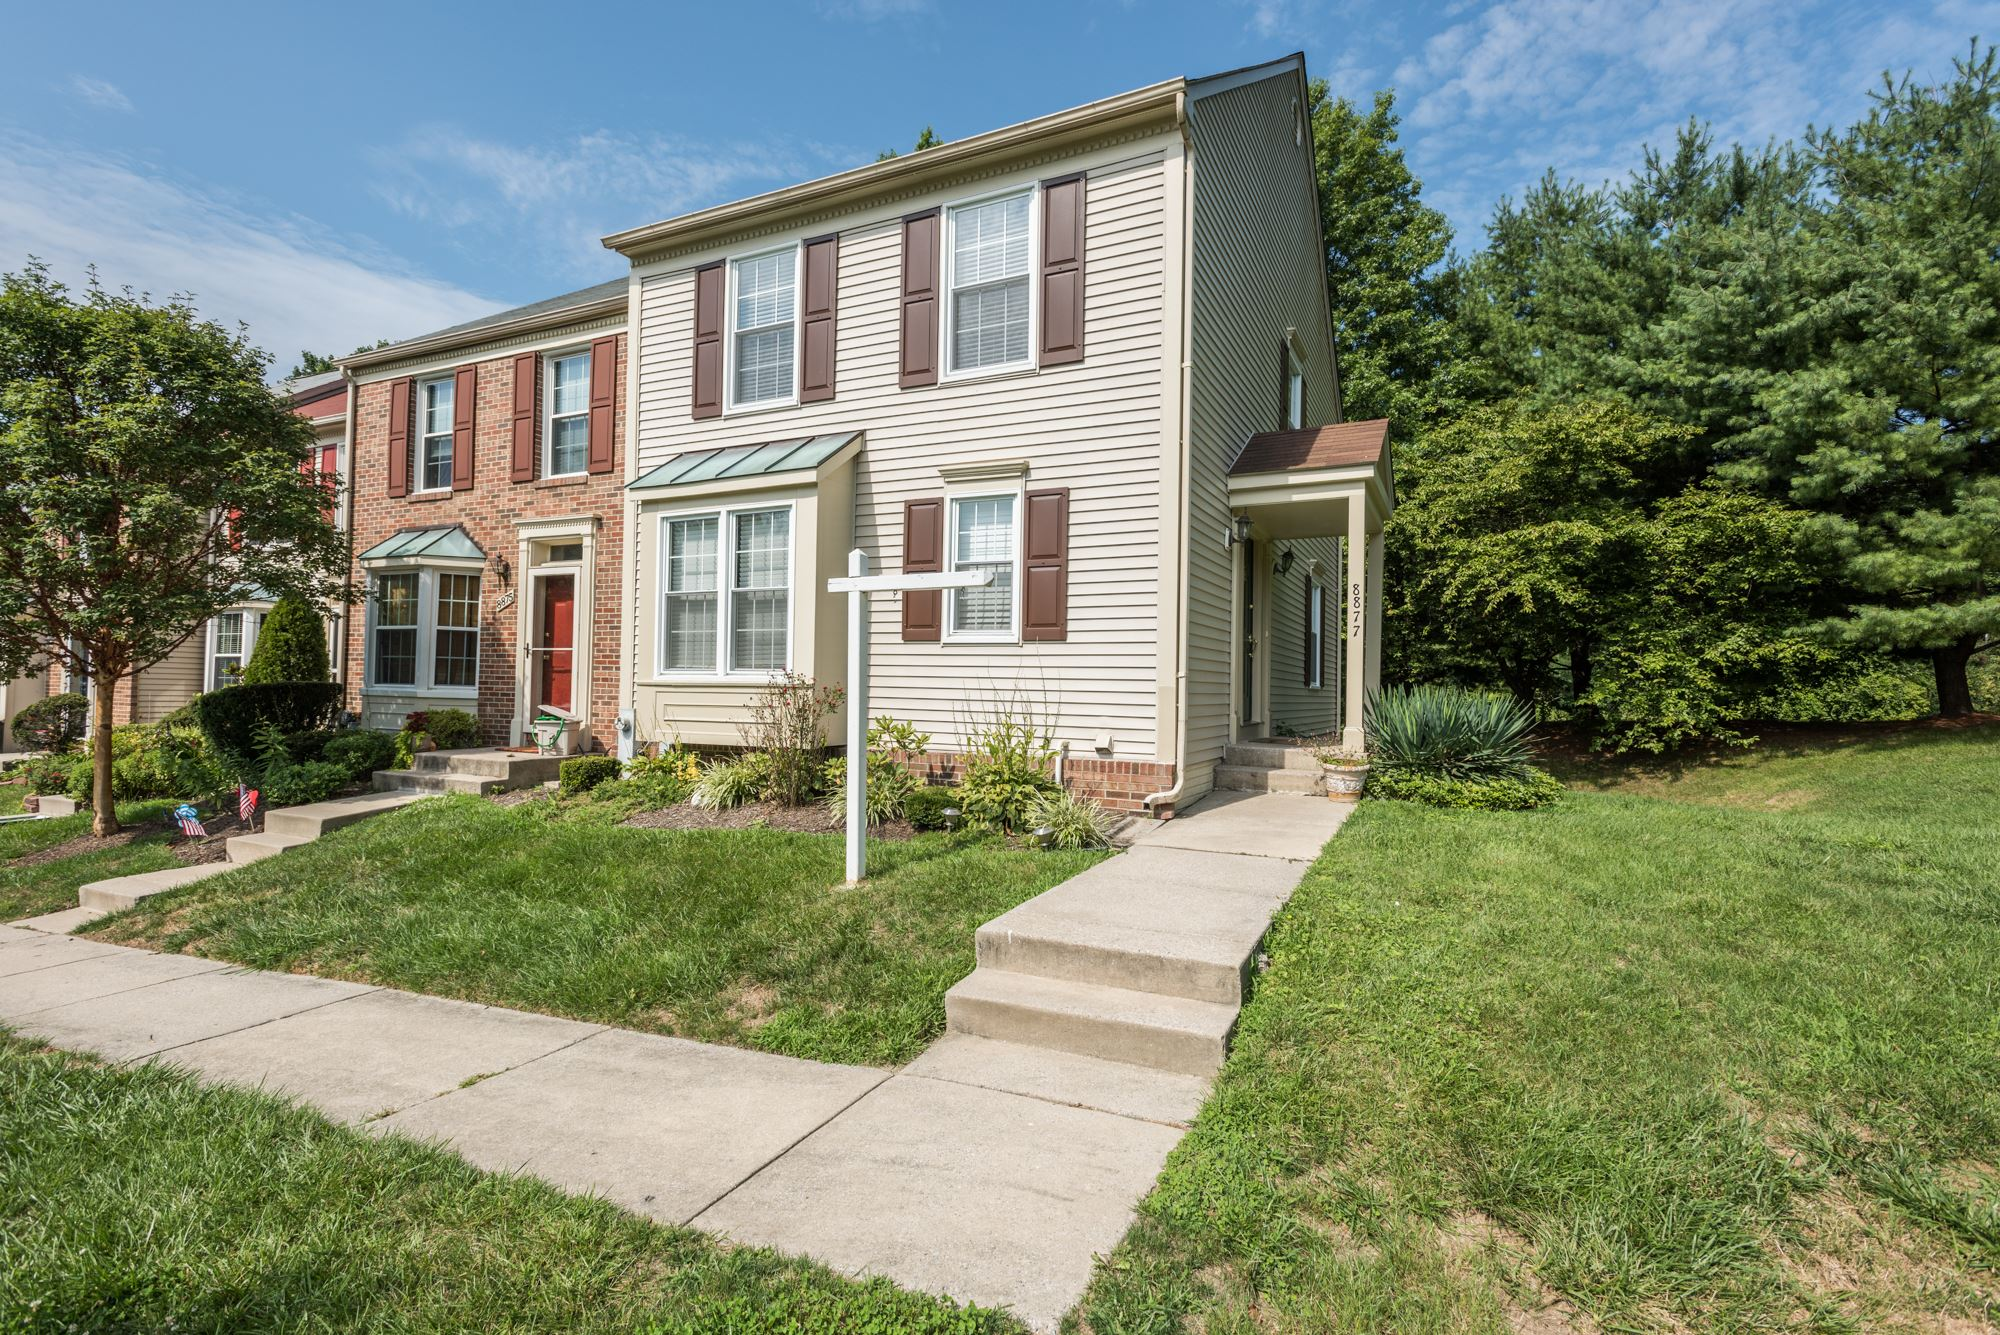 NEW LISTING: Rare End Unit Townhome in Ellicott City